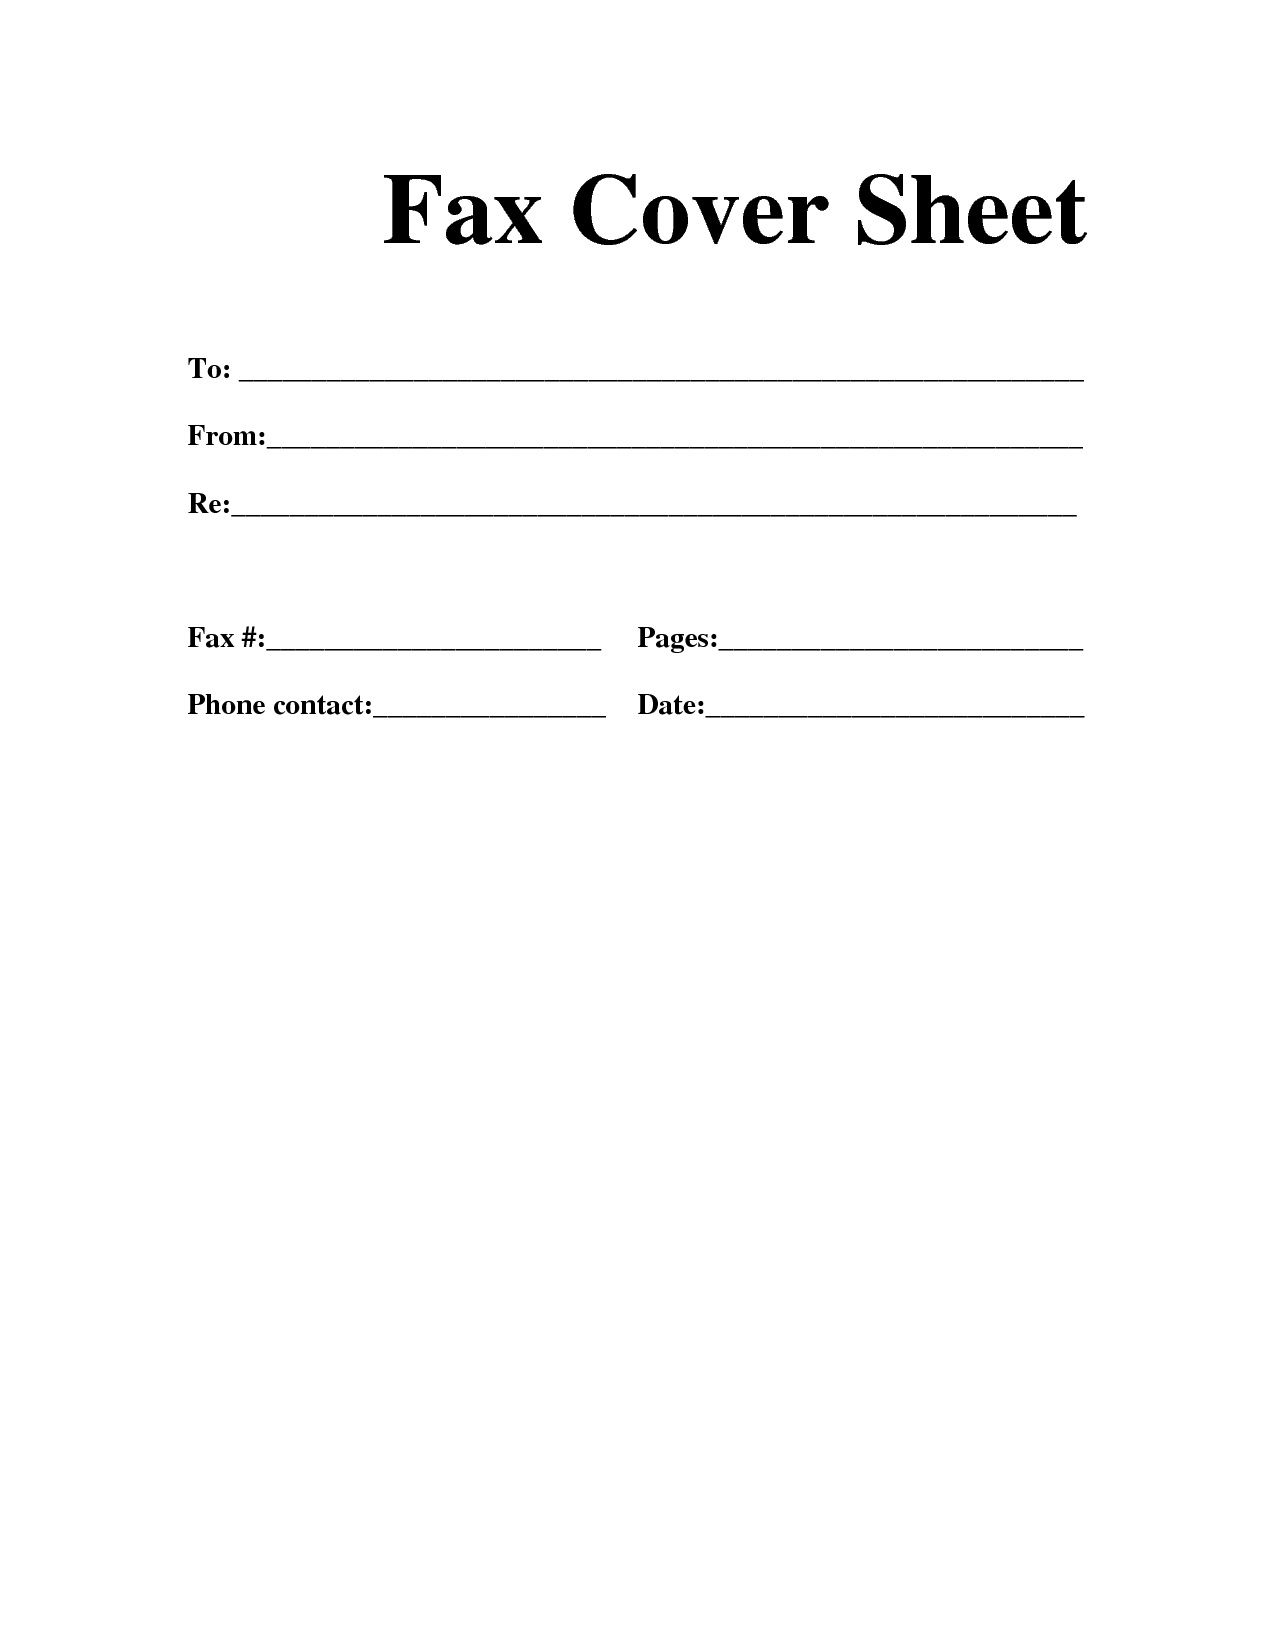 s fax covers sheets printable fax cover sheet fax cover sheet resume template 808 topresume info